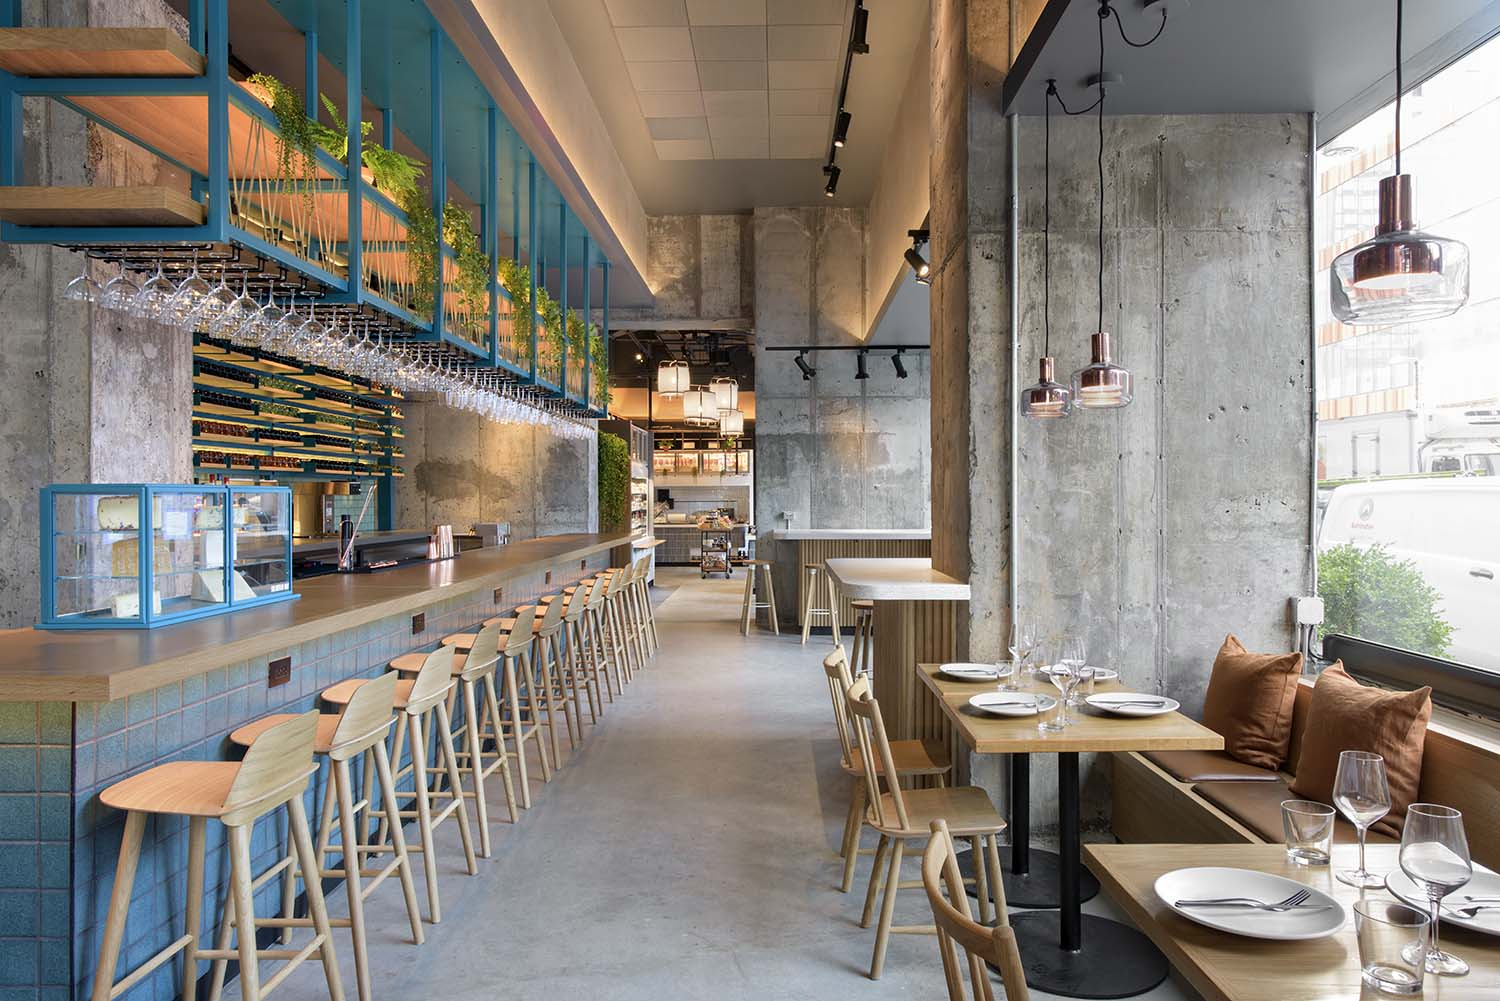 Murray's Cheese Bar Long Island City, Designed by Rockwell Group